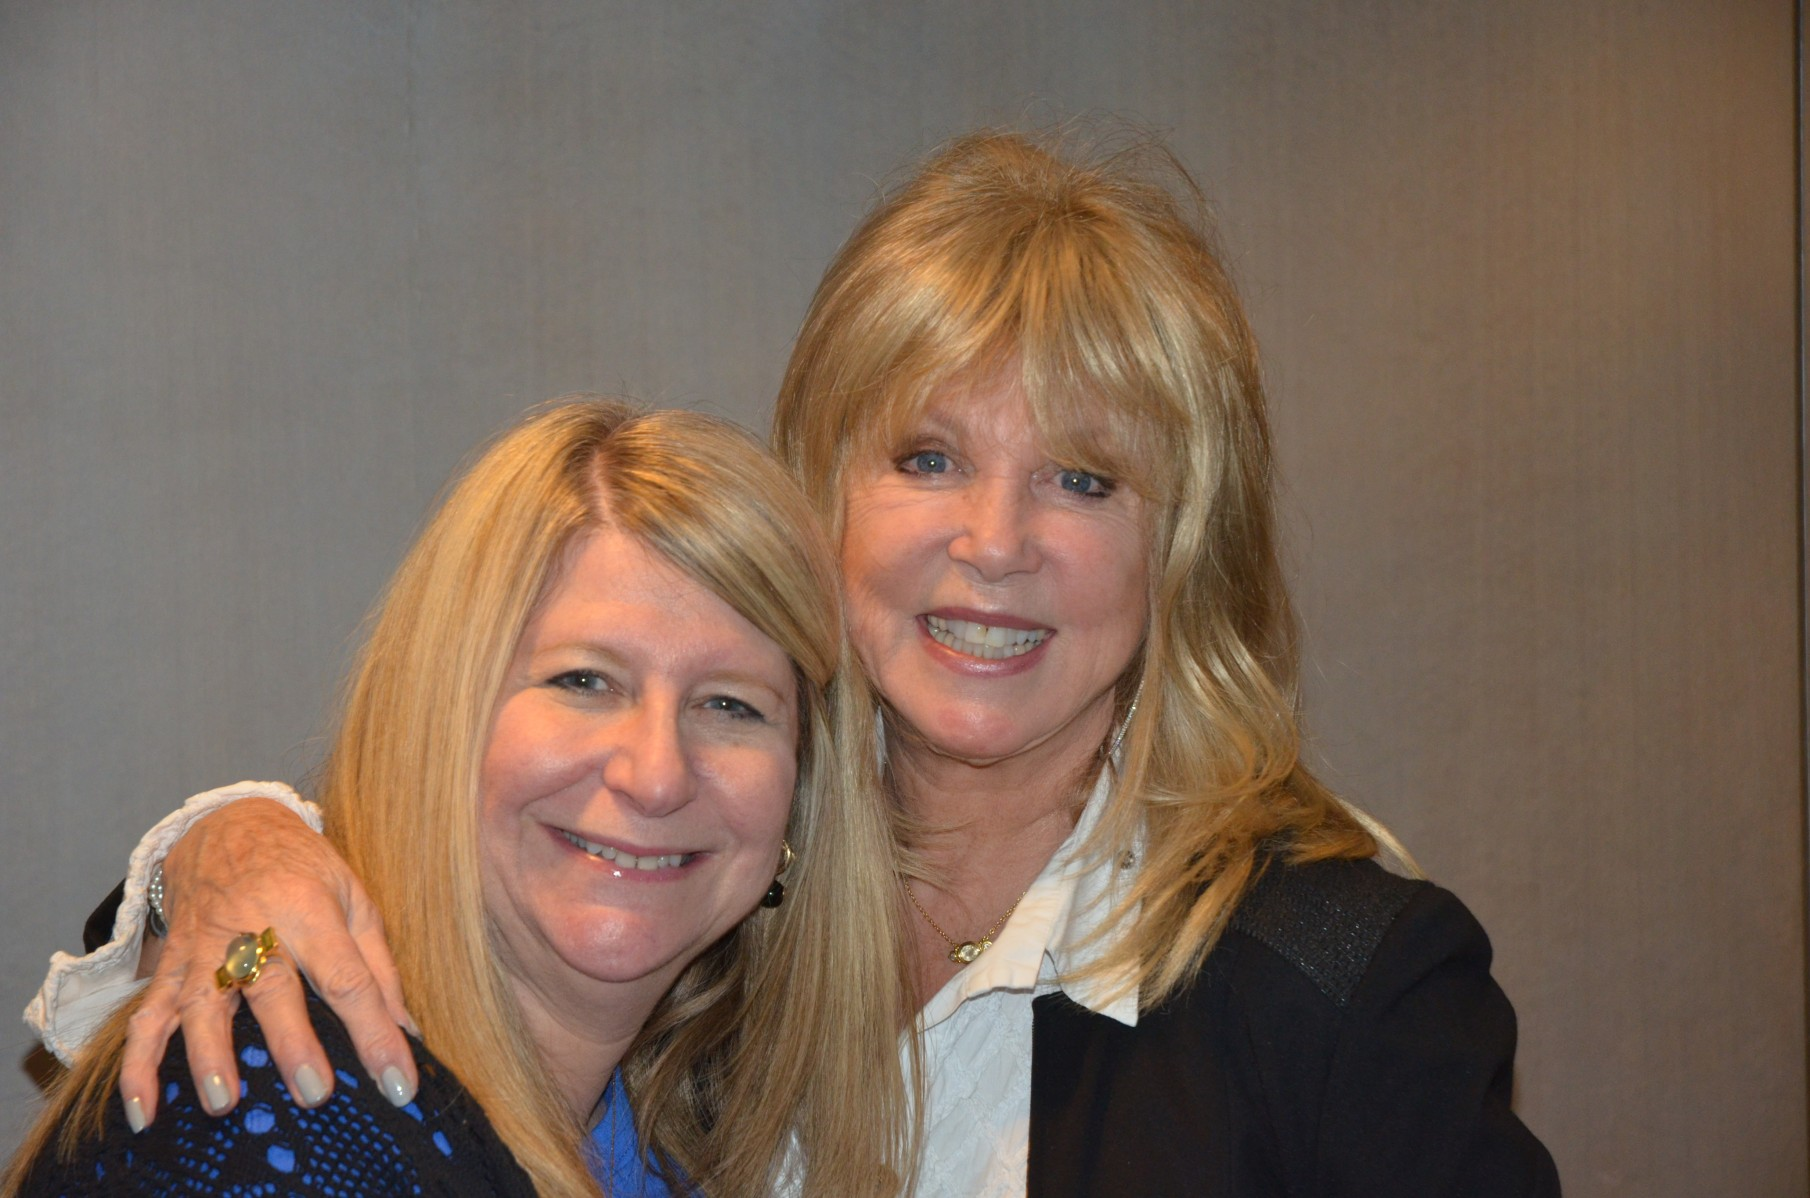 The wonderful Pattie Boyd, who was a surprise guest on Saturday, poses with Carol Lapidos.